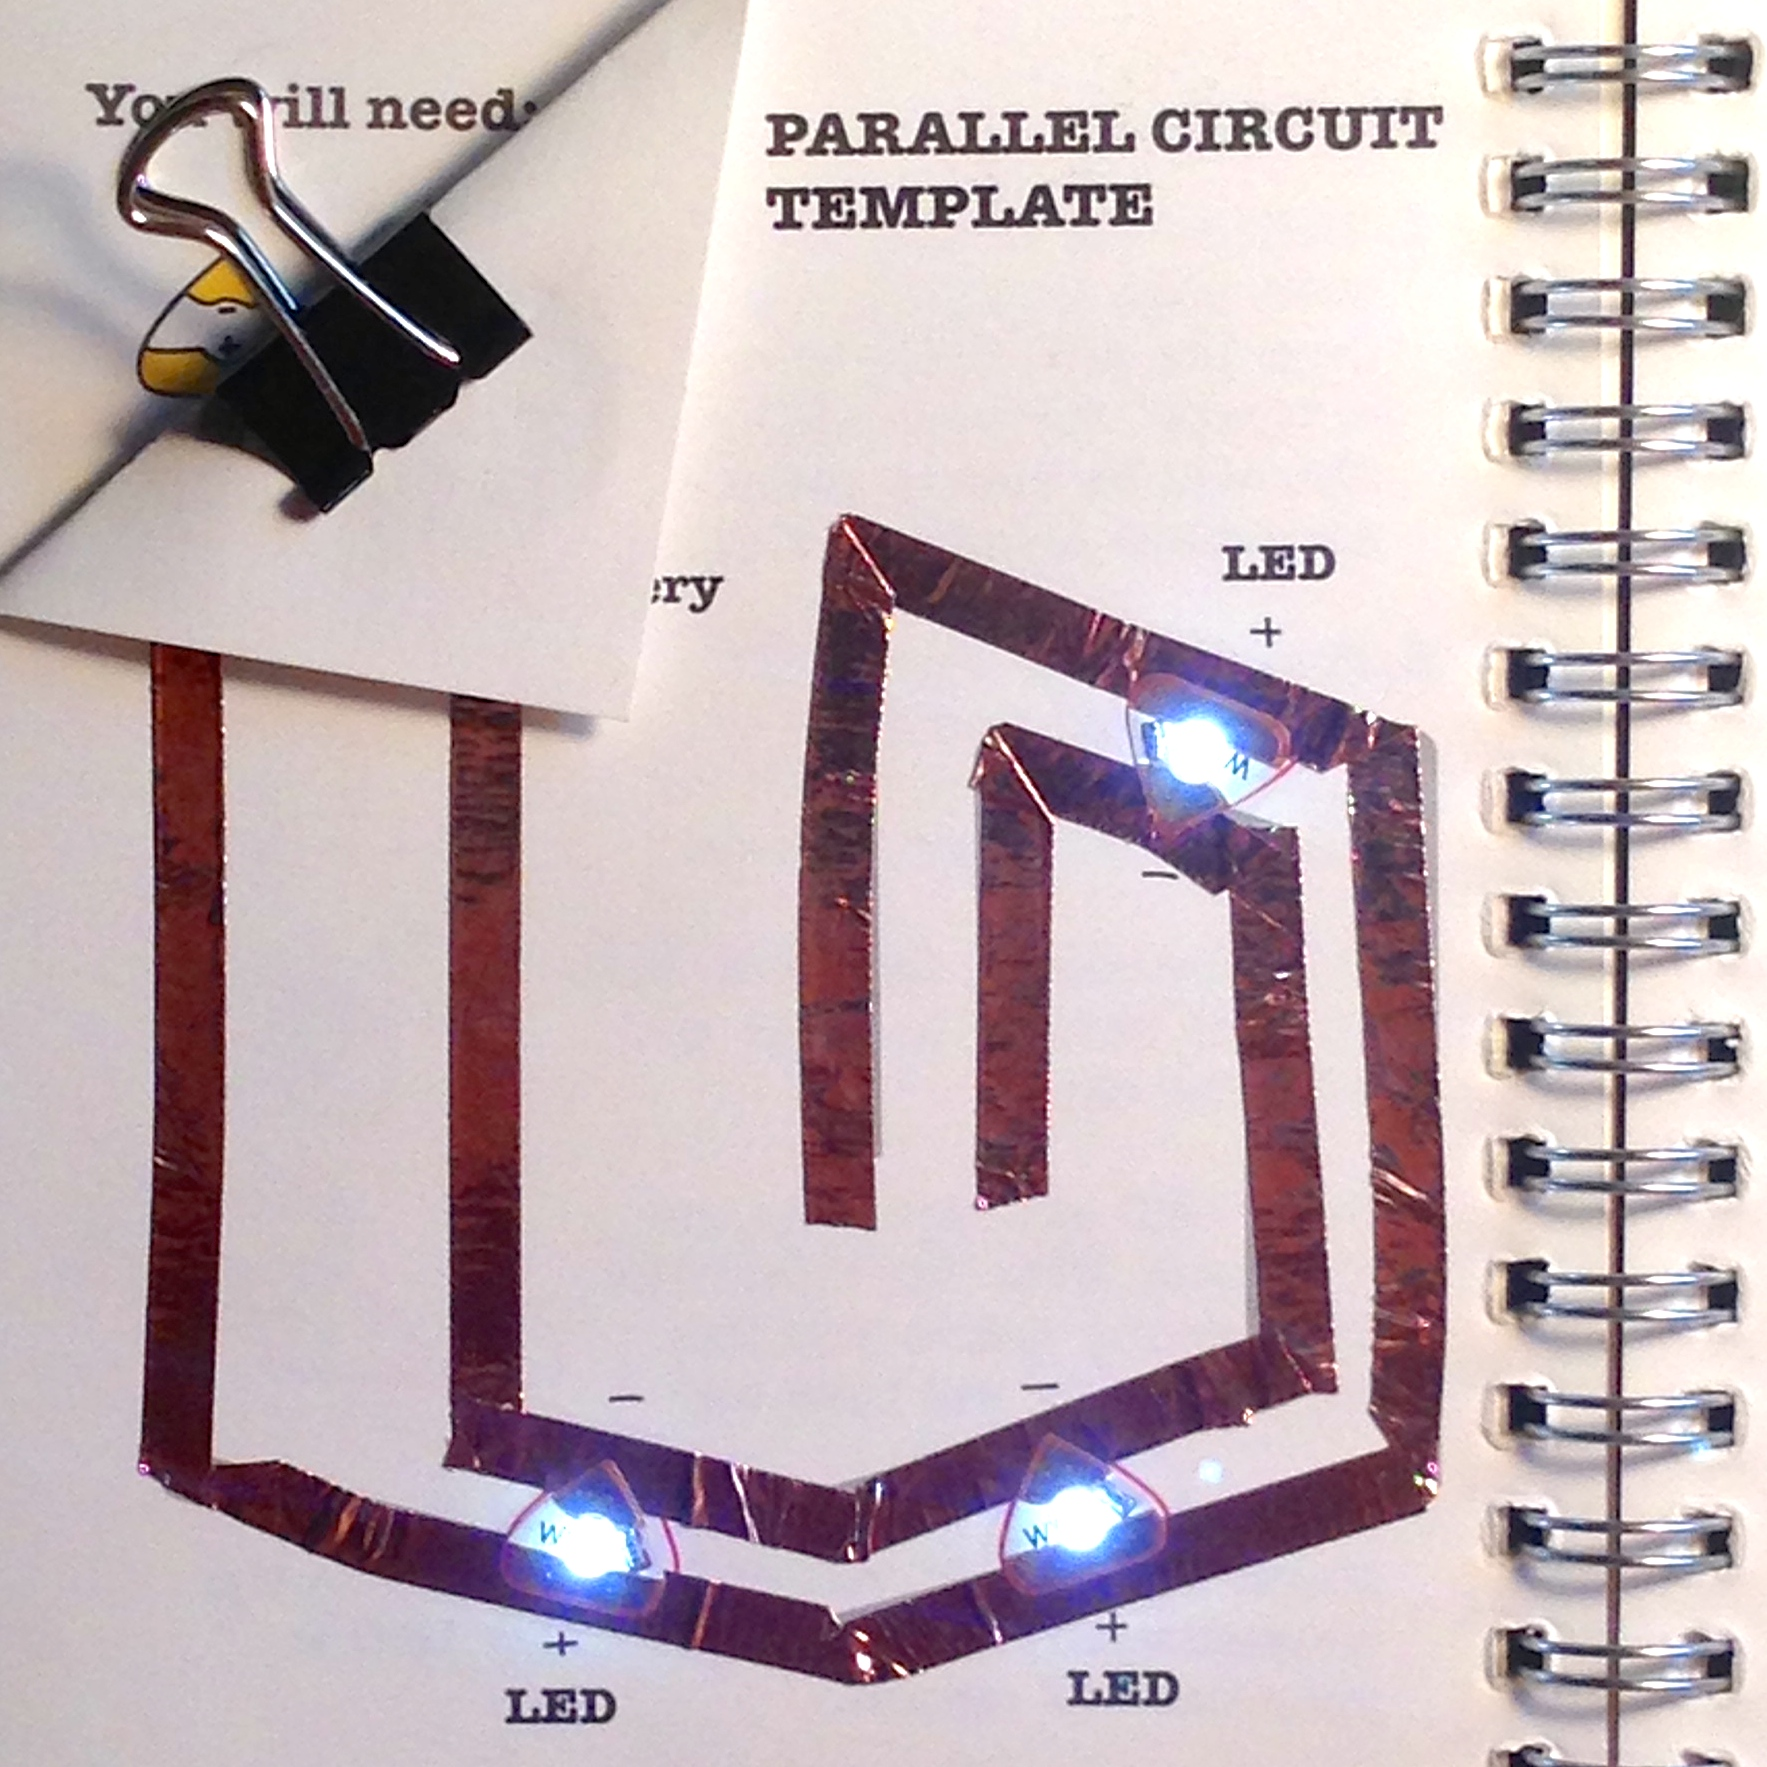 Learn Chibitronics Simple Sound Effects Circuits Electronic Projects Parallel Circuit Tutorial